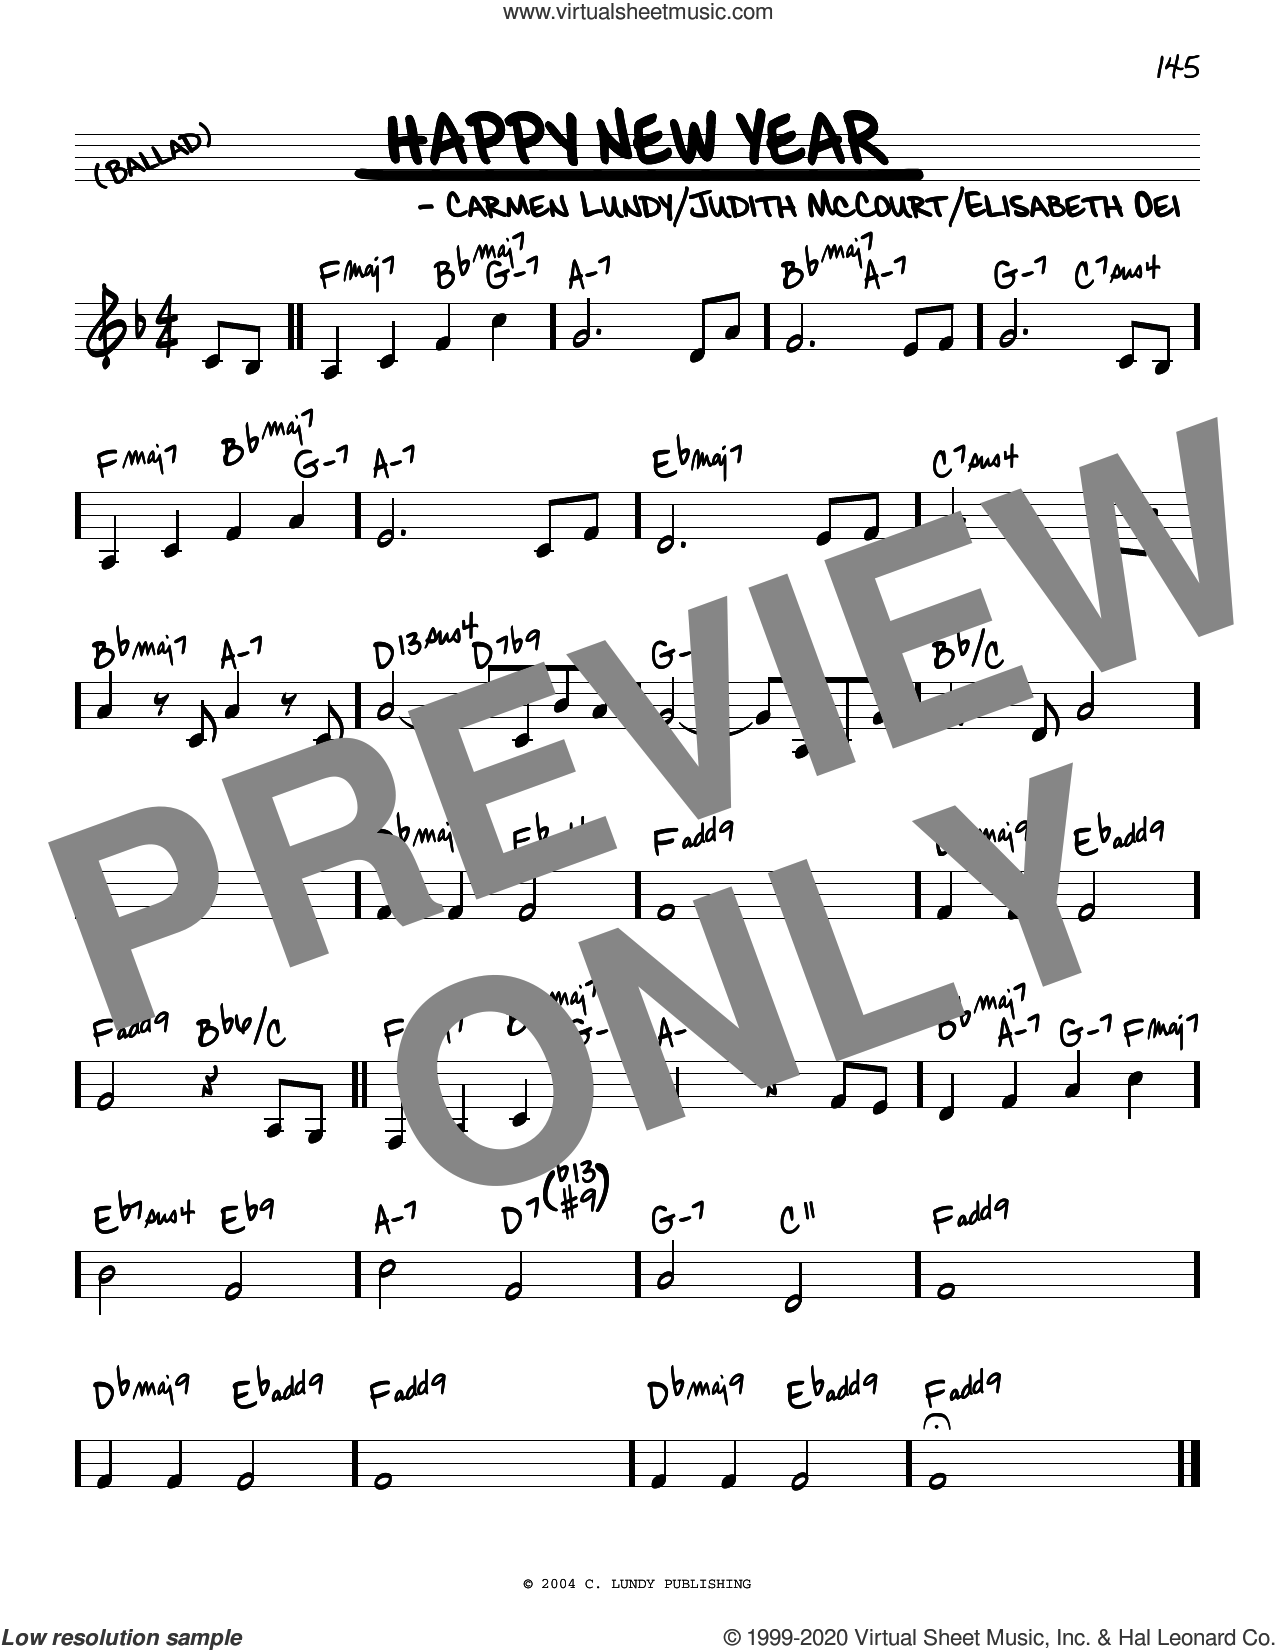 Happy New Year sheet music for voice and other instruments (real book) by Carmen Lundy, Elizabeth Oei and Judith McCourt, intermediate skill level